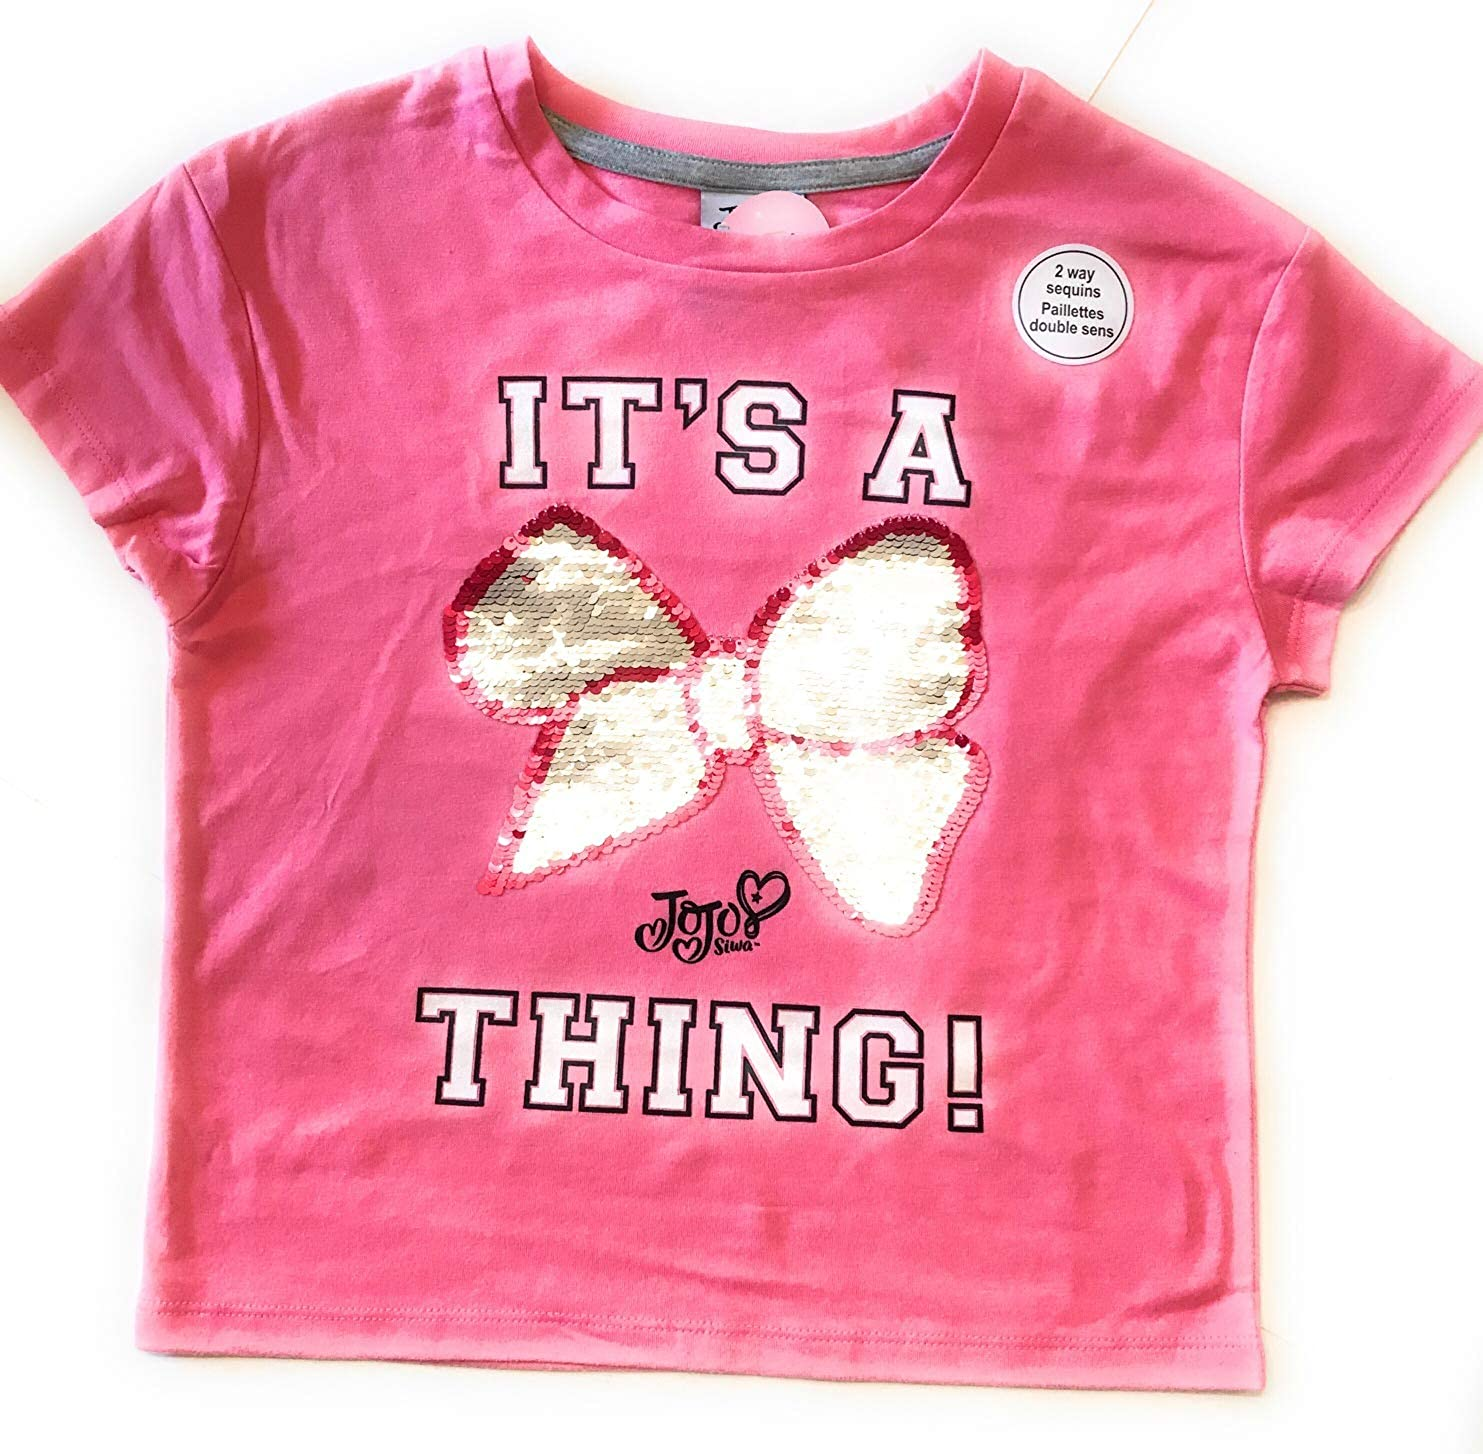 Flippy Sequin Pink Bow Shirt for Girls Size M (7-8)